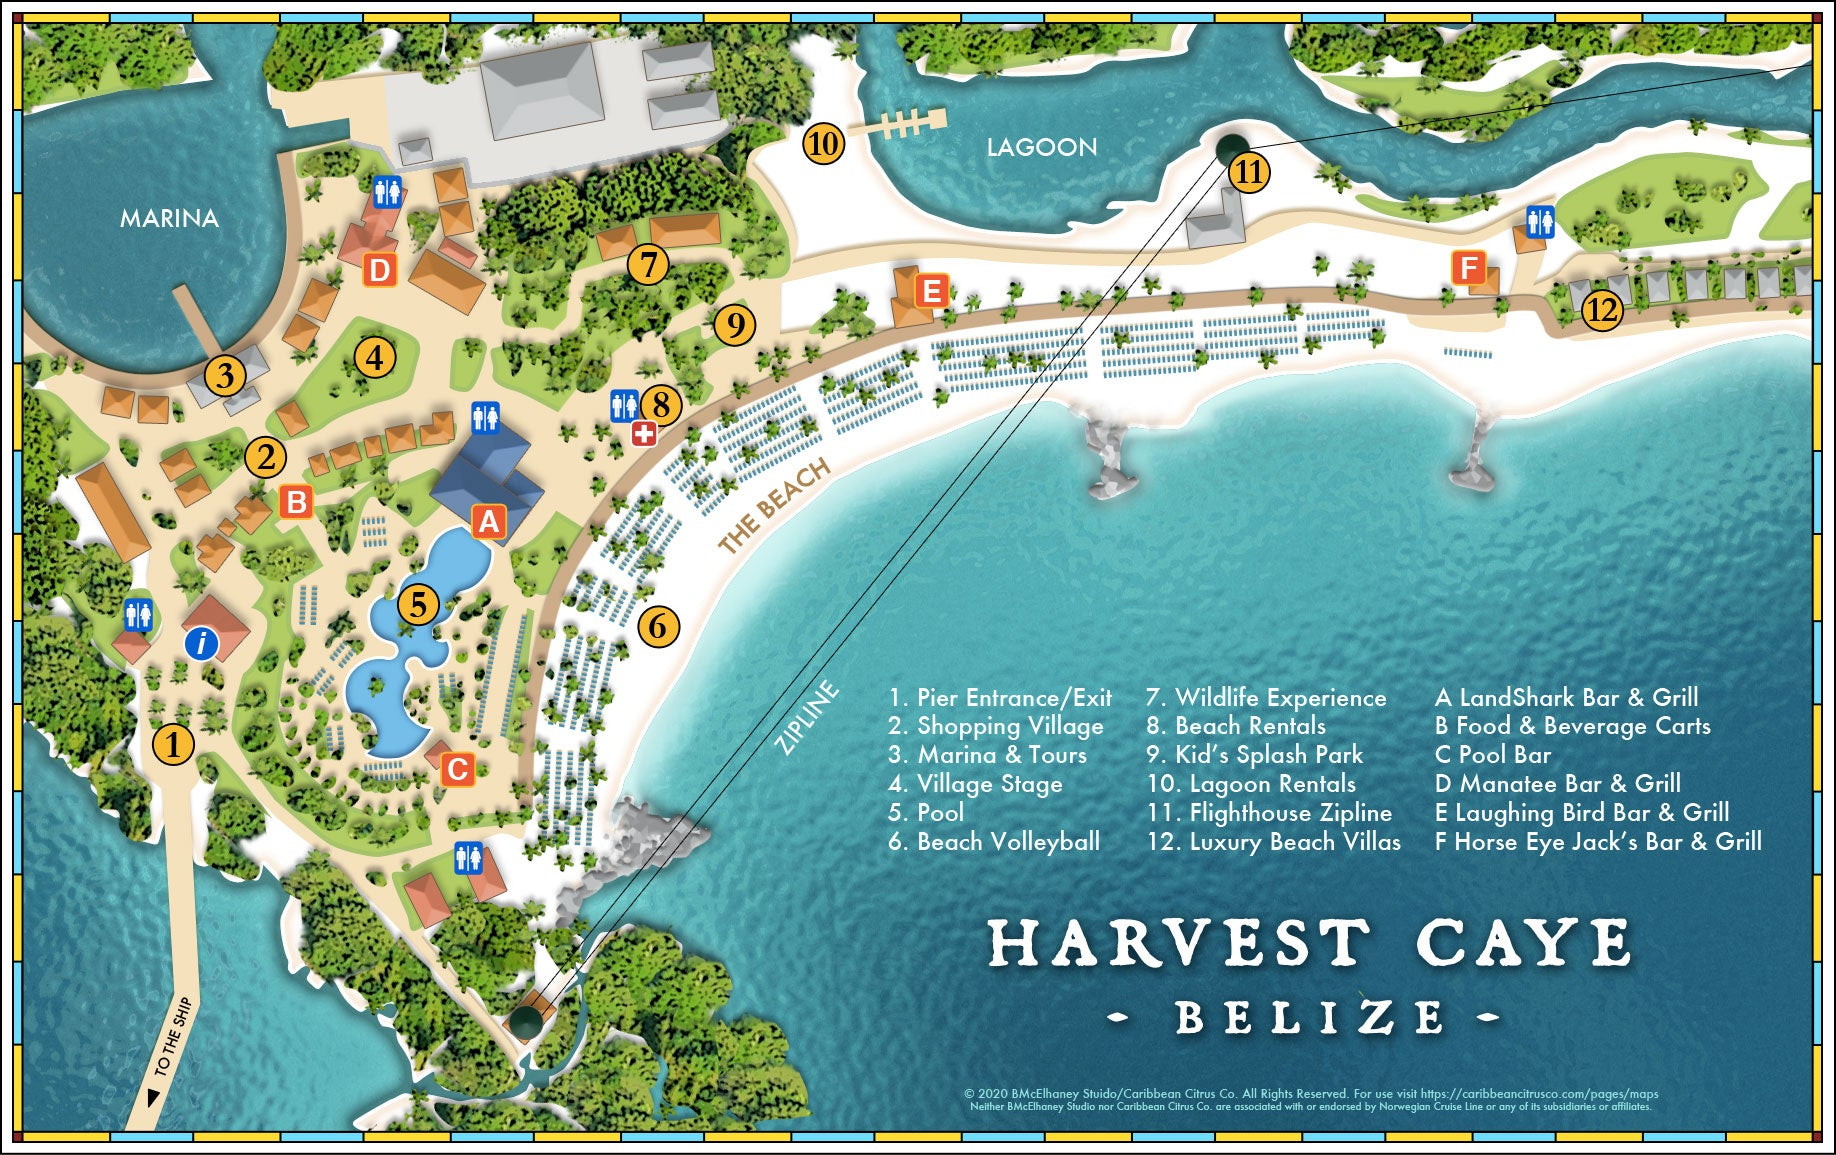 Harvest Caye Belize Map